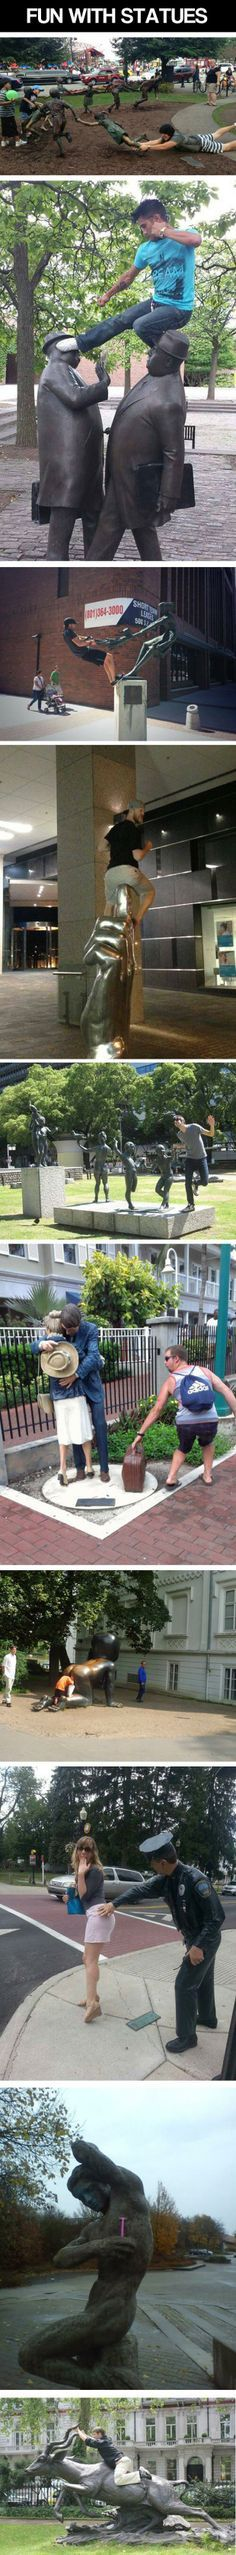 What's The Point Of Statues If You Can't Have Fun With Them? – 10 Pics | best stuff